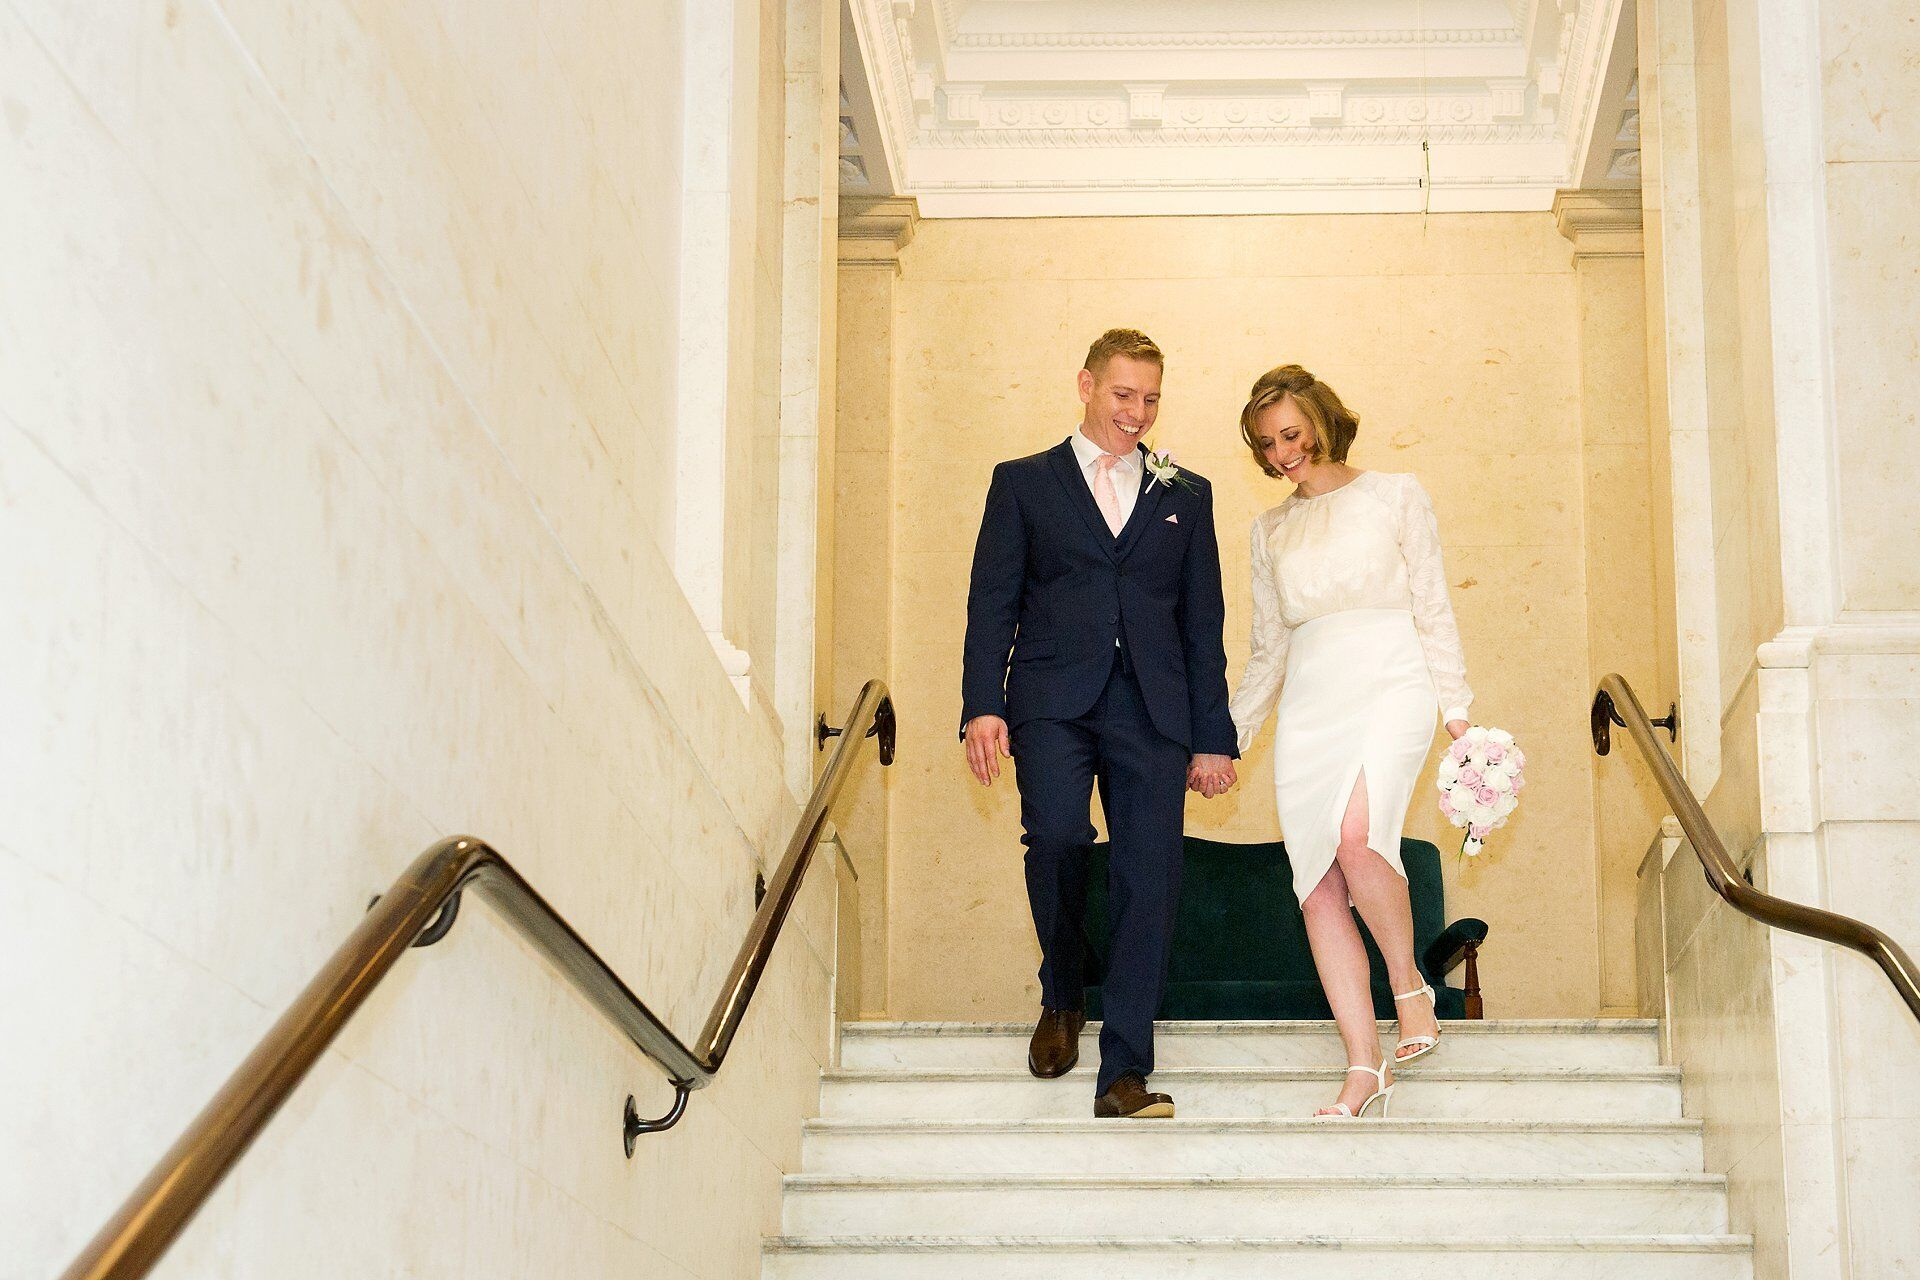 famous staircase with bride and groom old marylebone town hall wedding photogrpahy specialist emma duggan